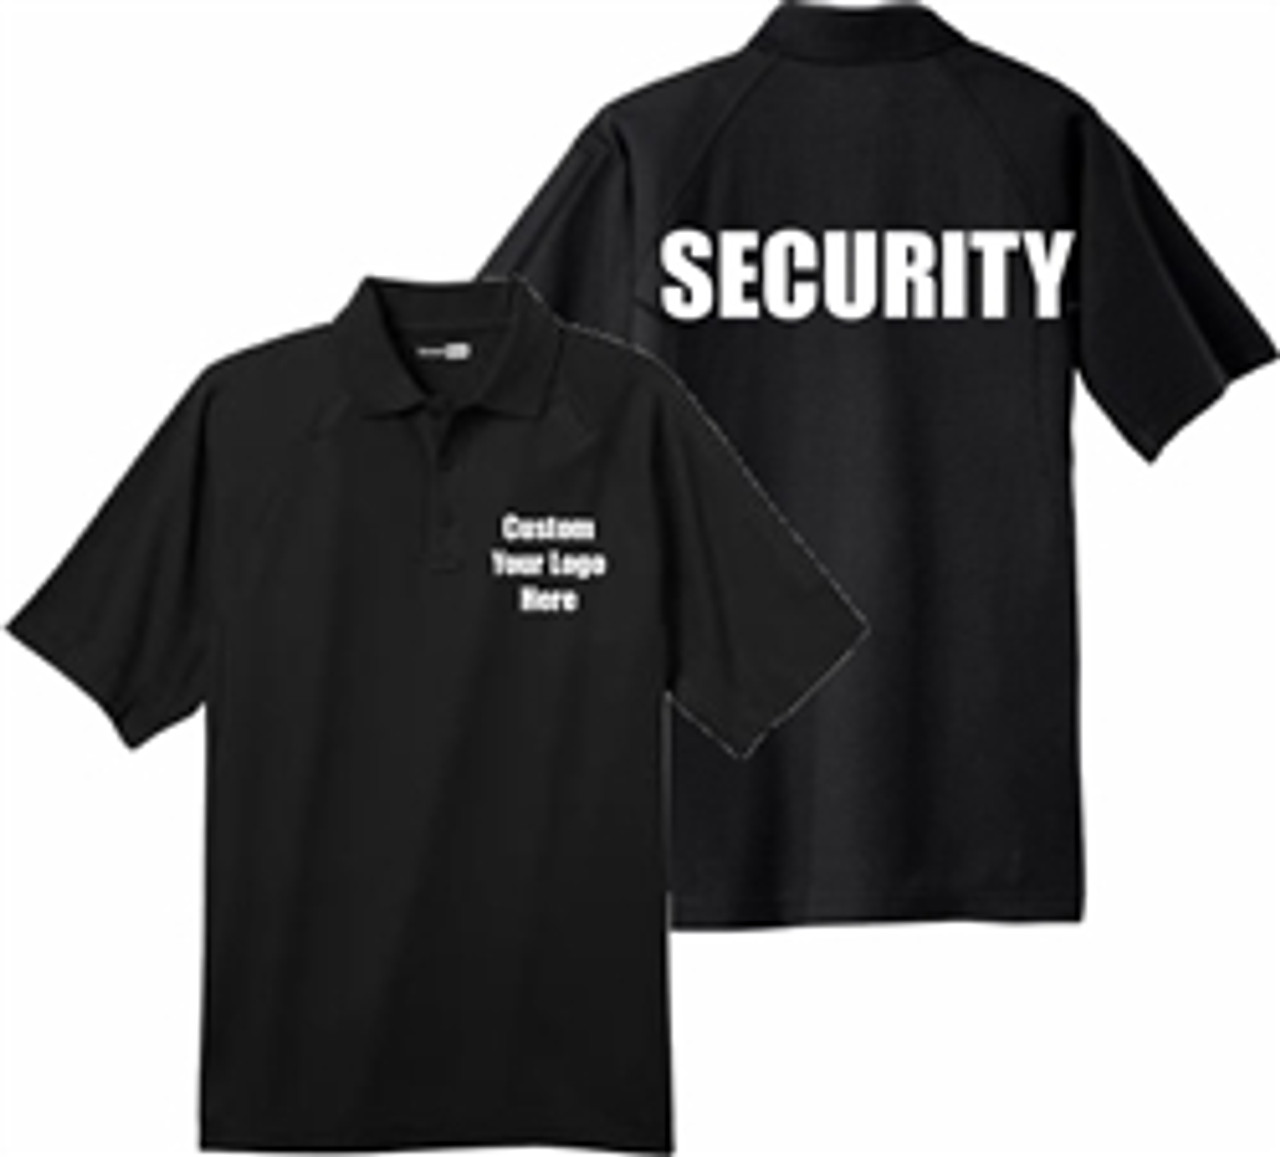 Security - Custom Embroidered Black Short Sleeve Tactical Polo